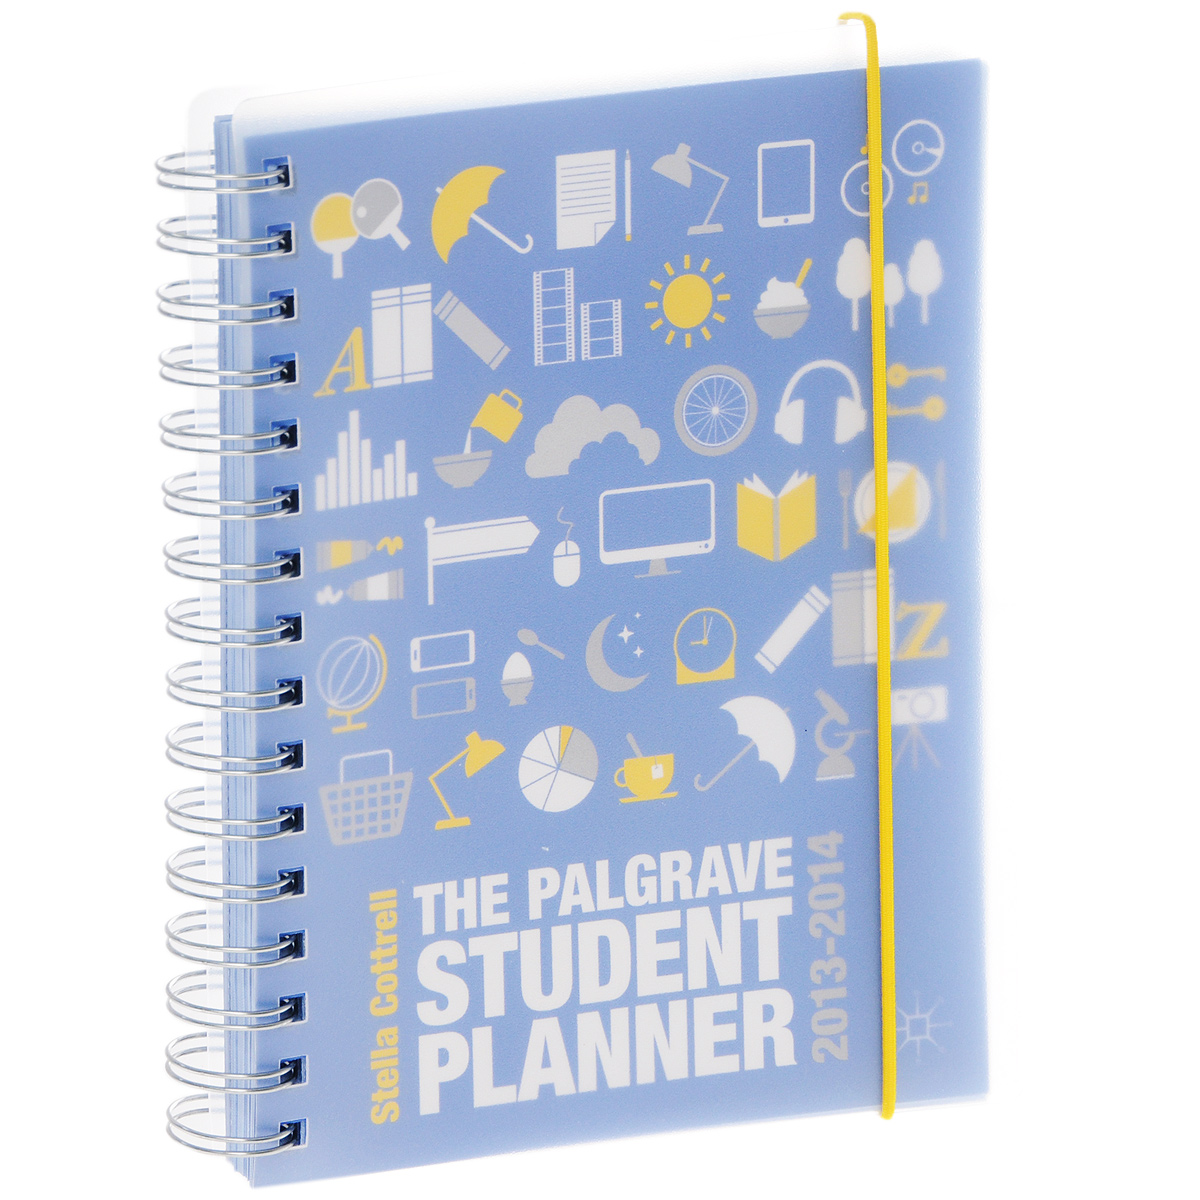 The Palgrave Student Planner 2013-2014